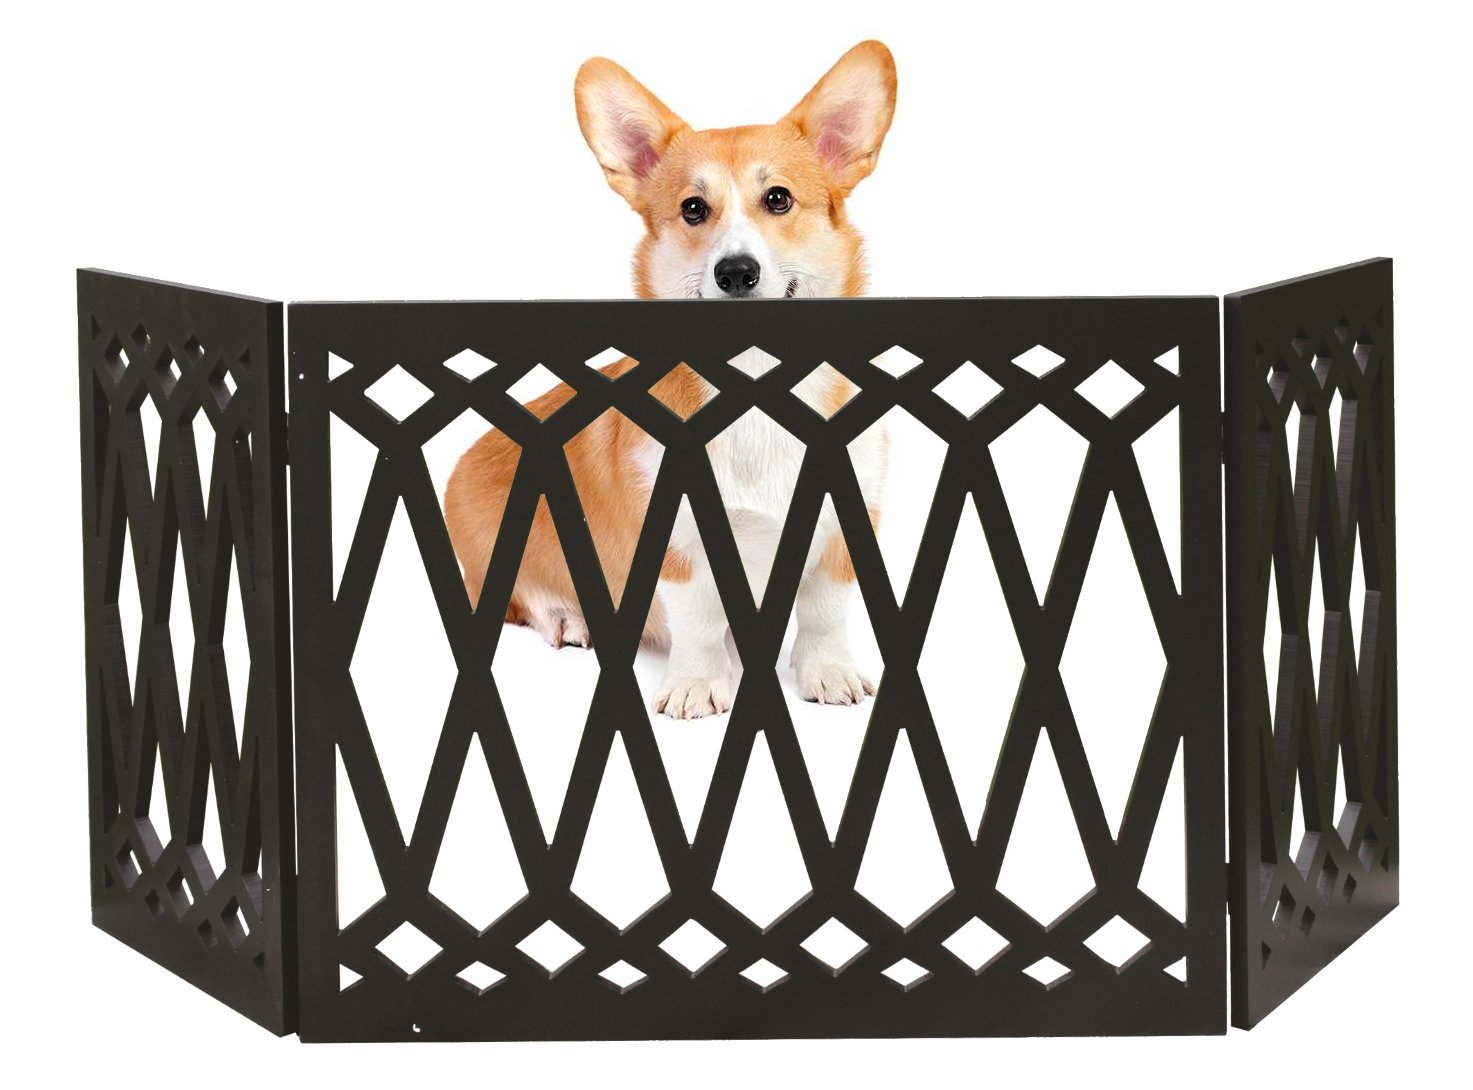 Kleeger Freestanding Folding Dog Gate - For Small Pets [Diamond Deco'r Decorative Design] No Tools Required (Black Diamond)